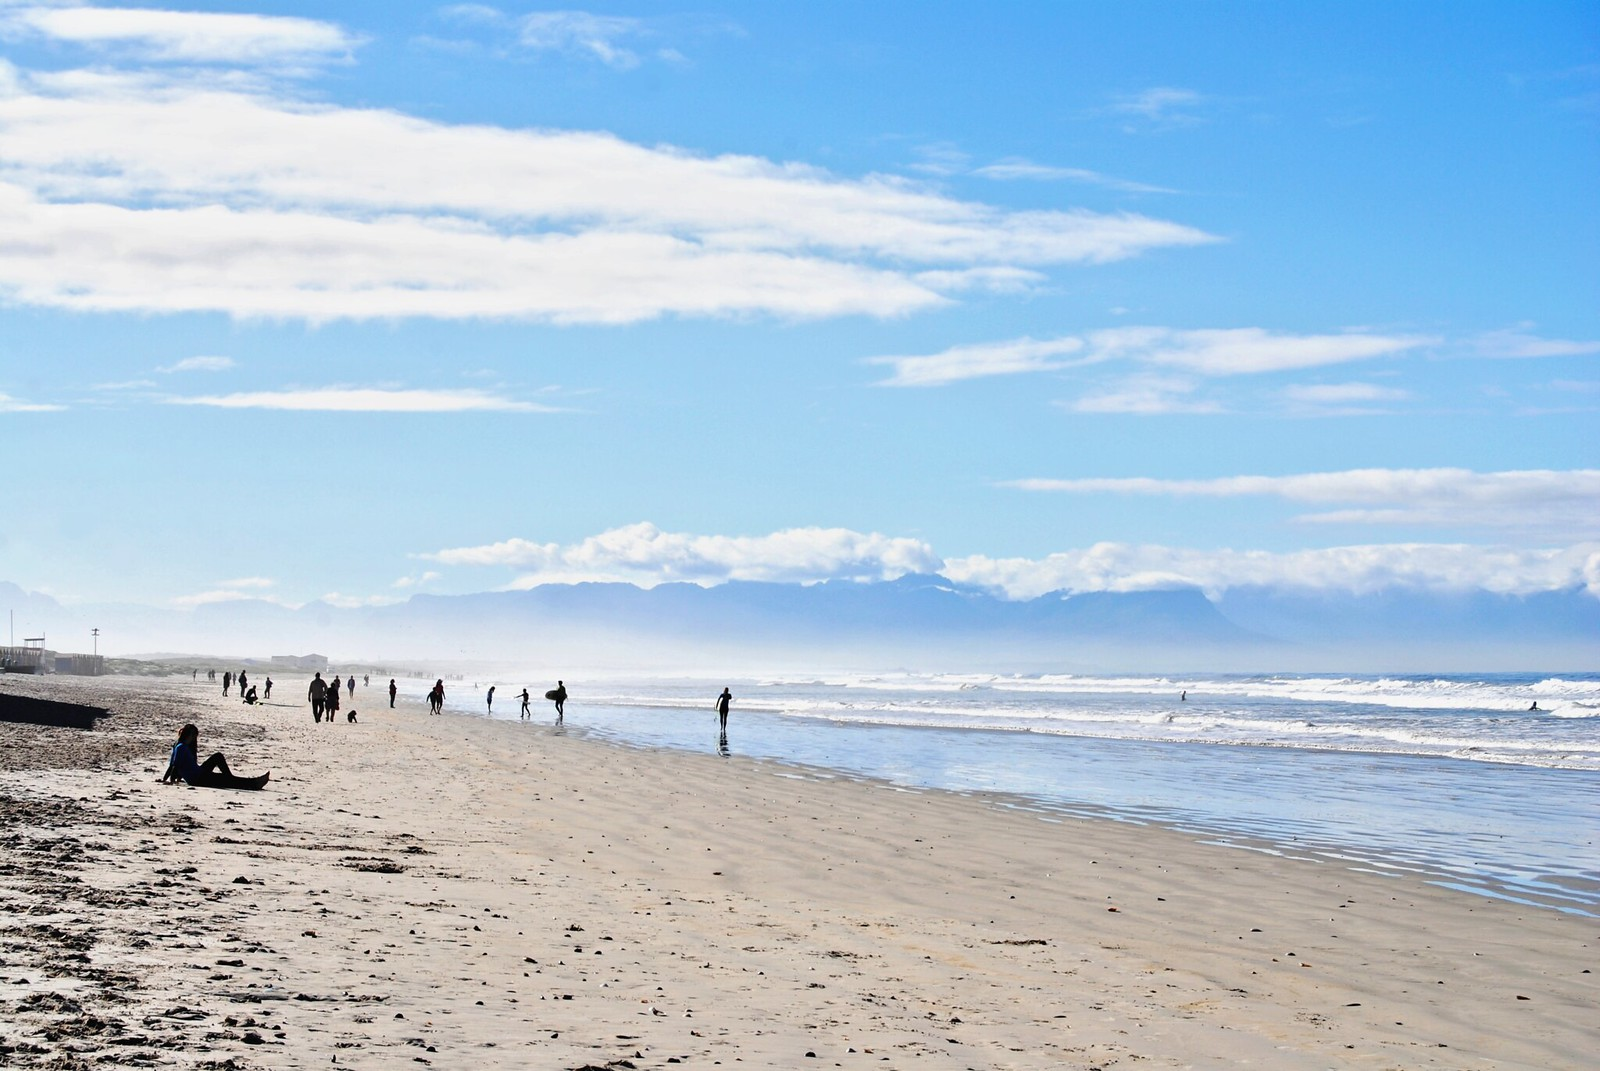 Surfers at Muizenberg Beach, South Africa.